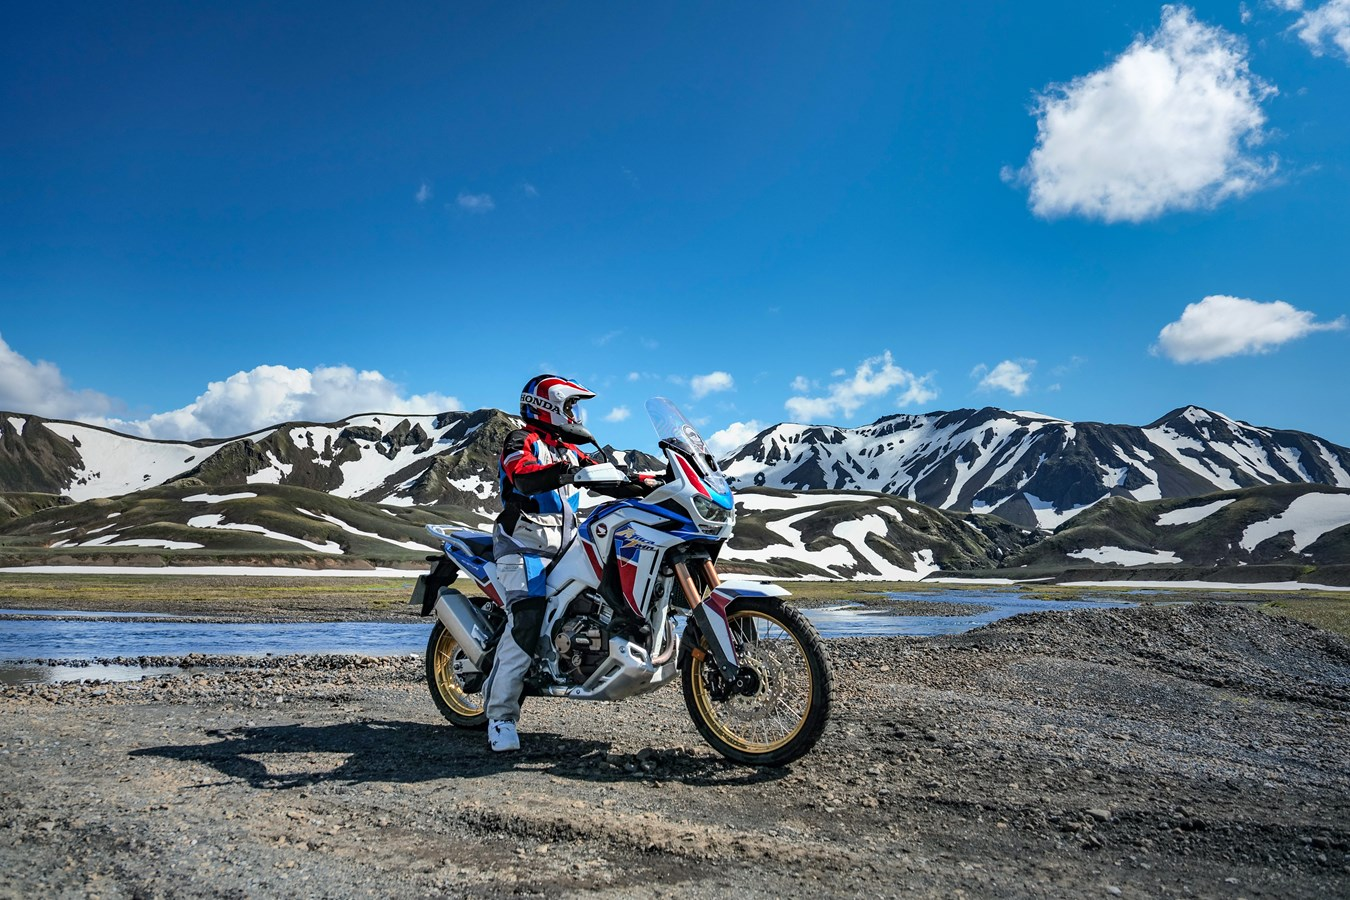 Honda Adventure Roads 2021 postponed for one year